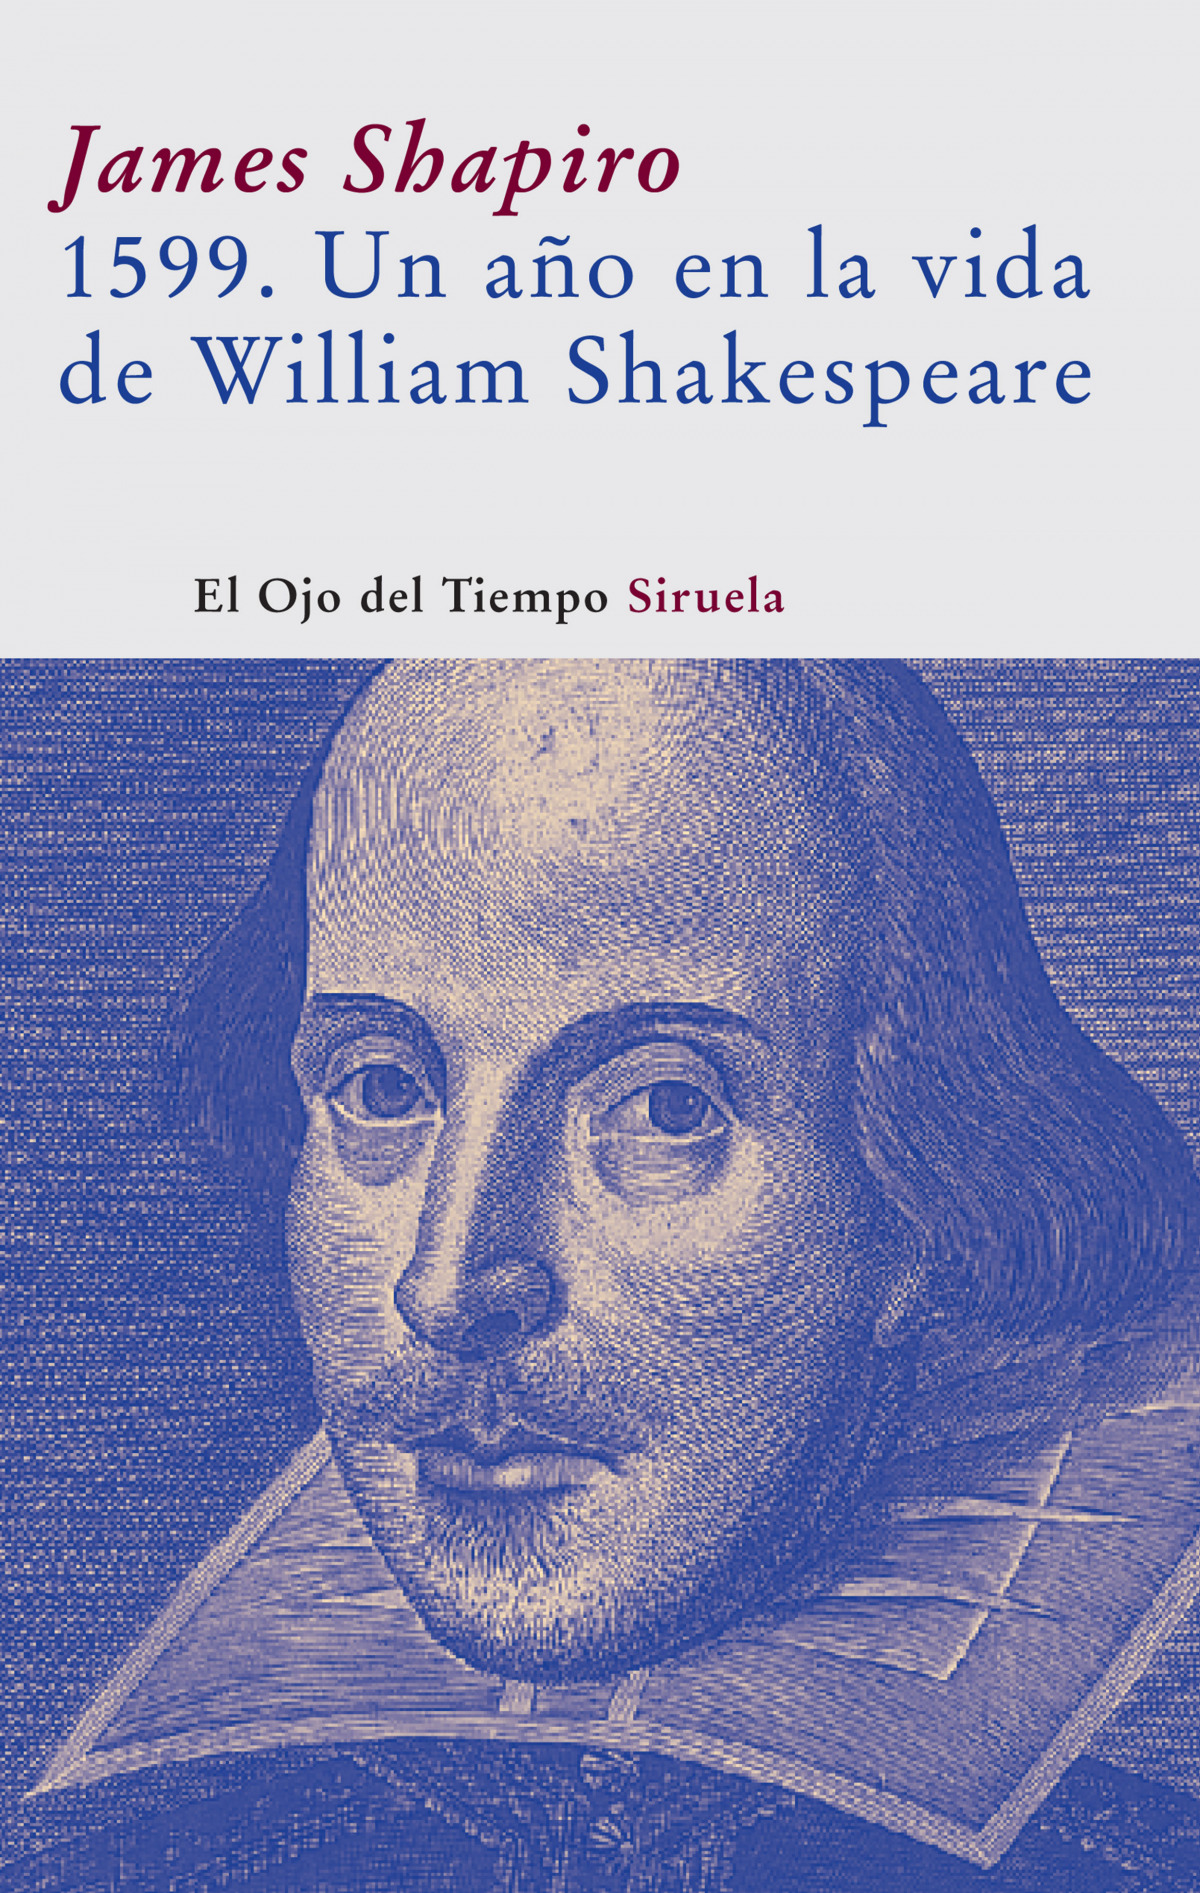 1599 un aÑo vida de shakespeare - Shapiro, James